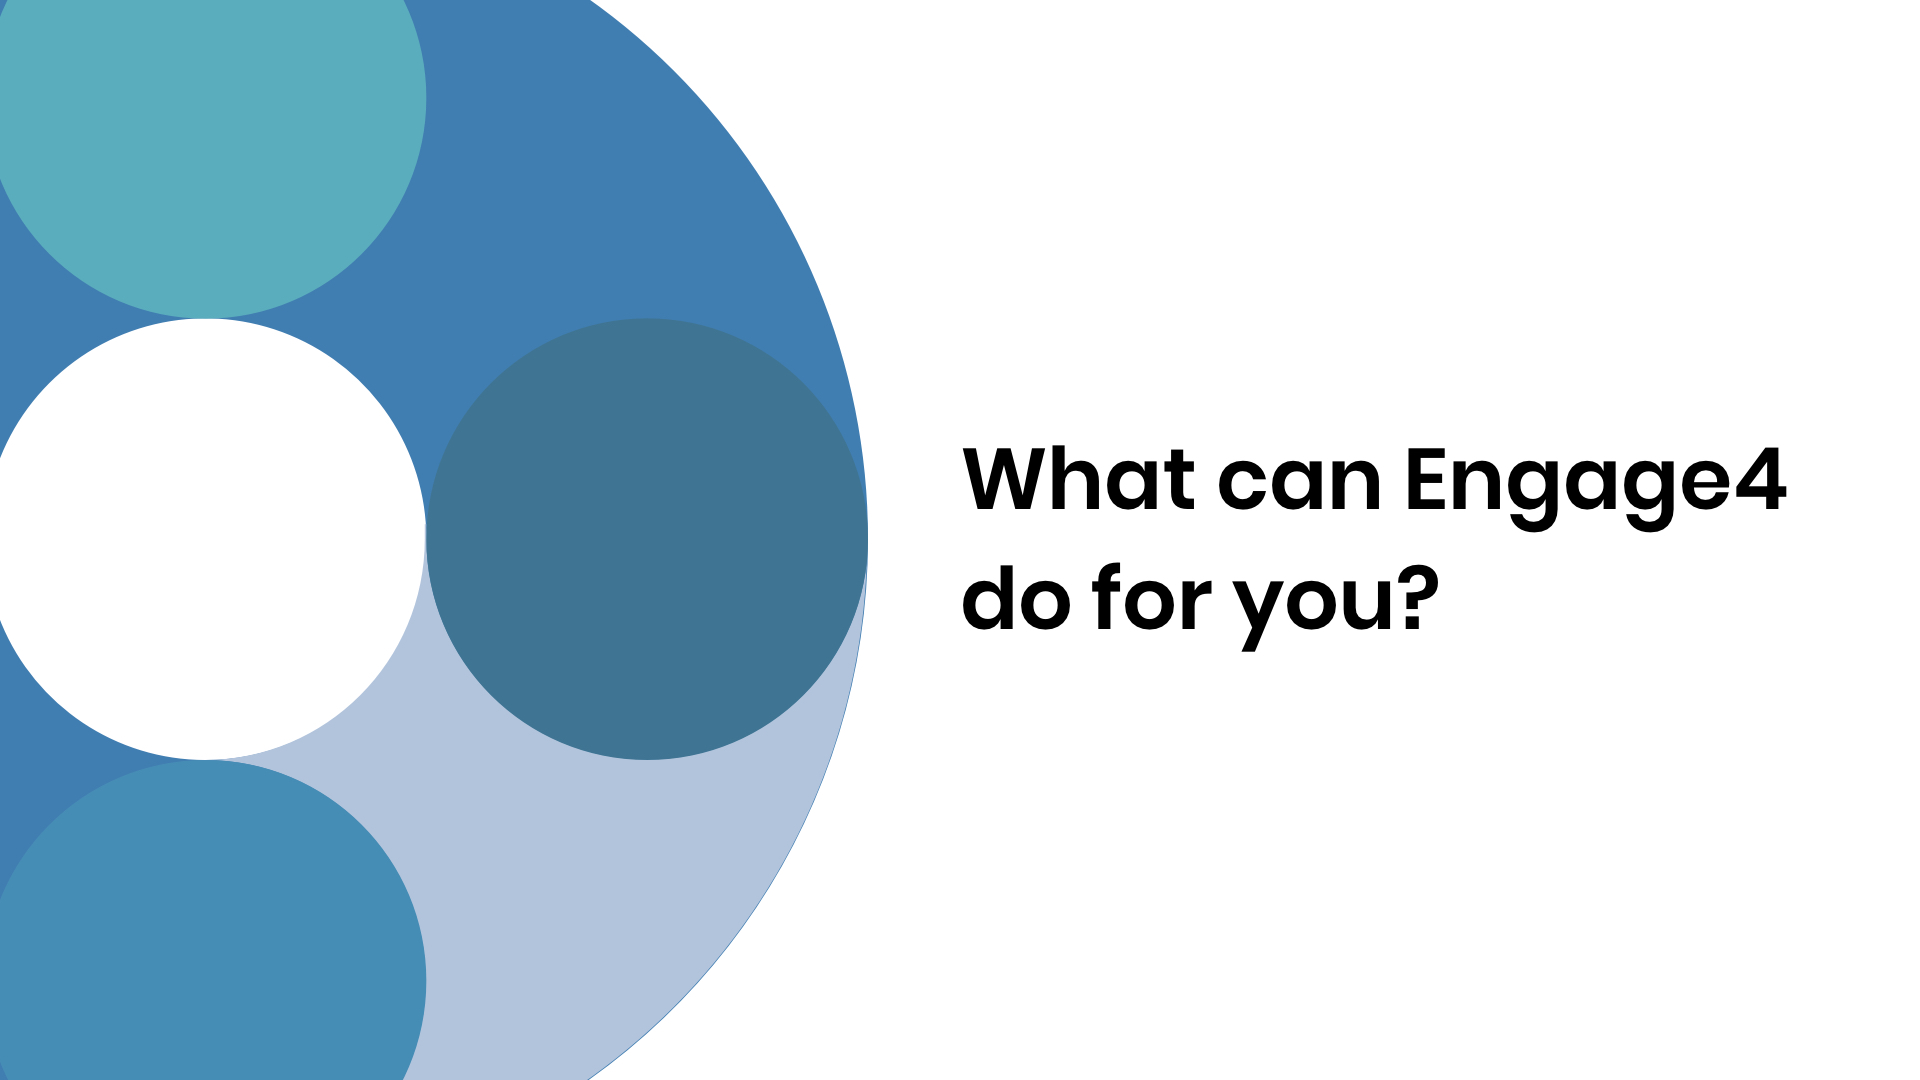 What can Engage4 do for you? Video still